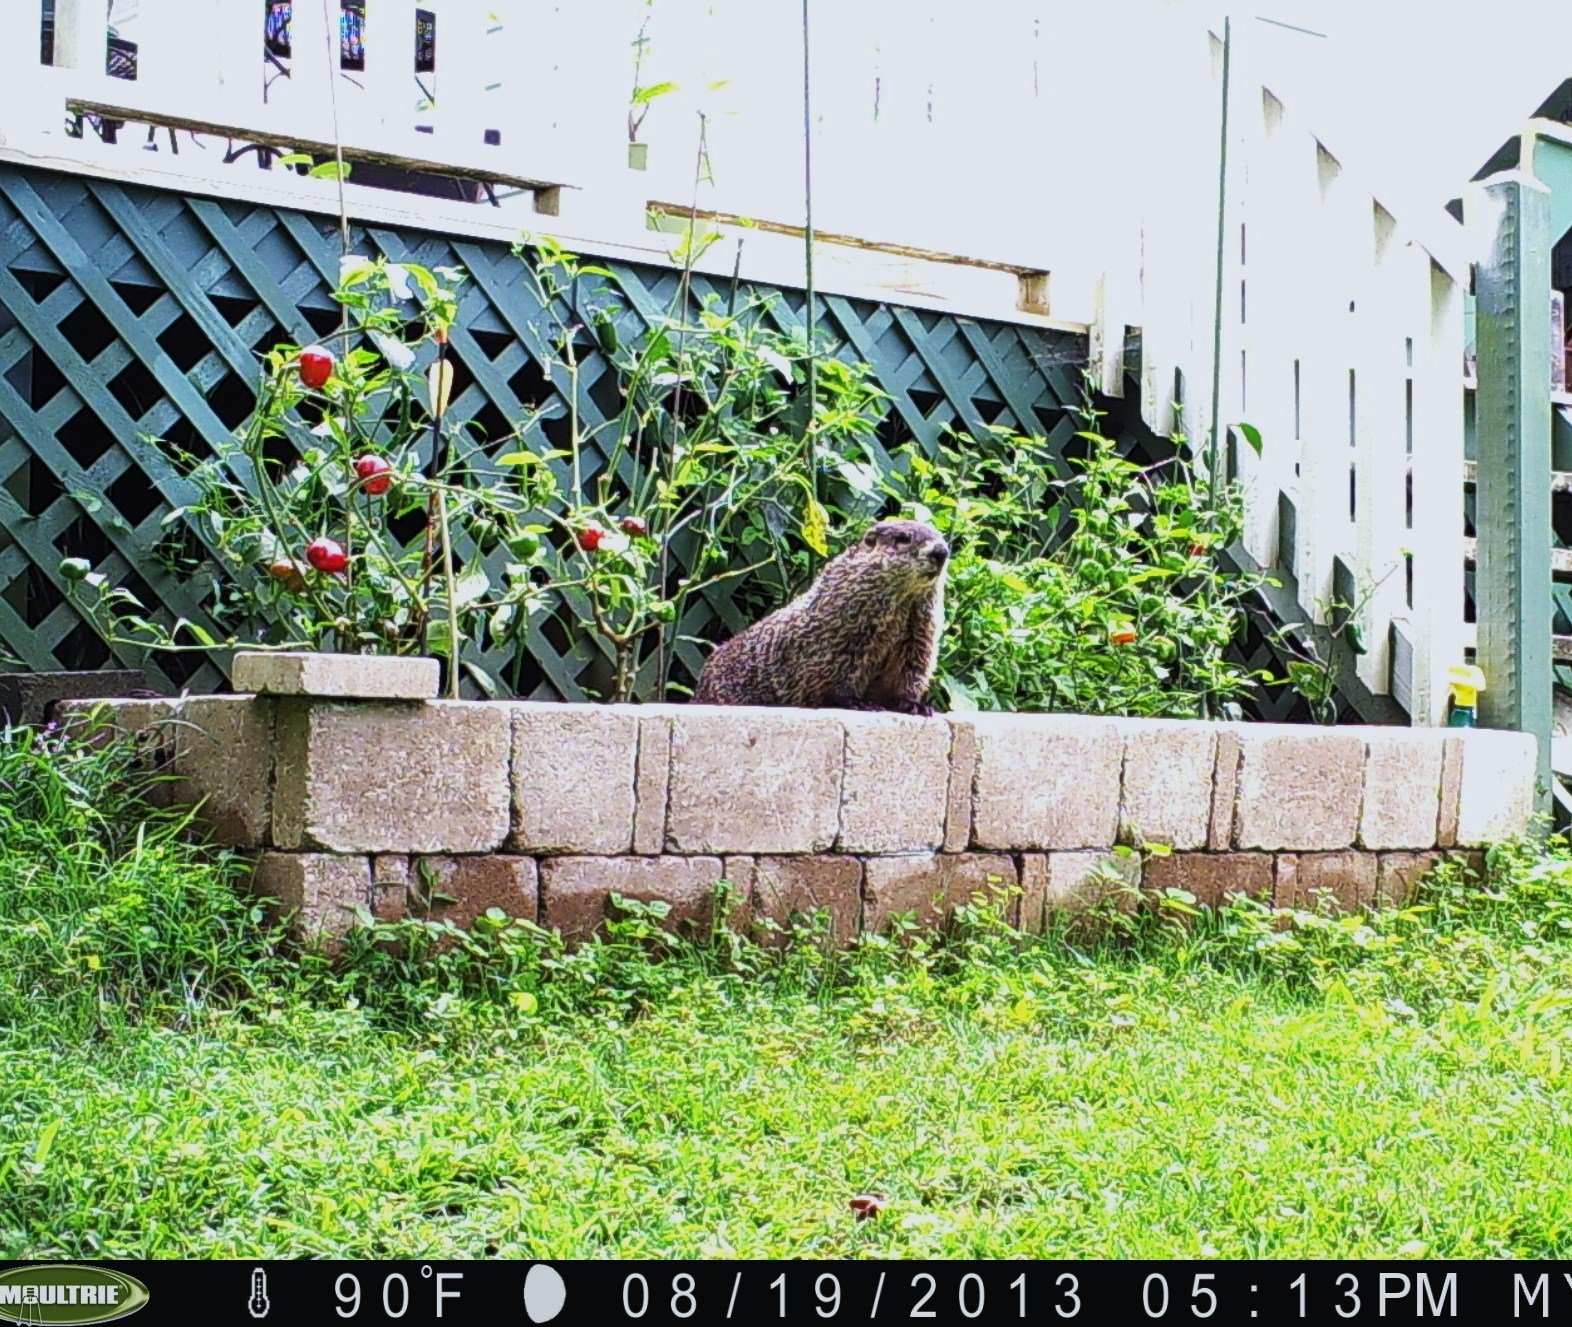 Groundhog Woodchuck Control Walter Reeves The